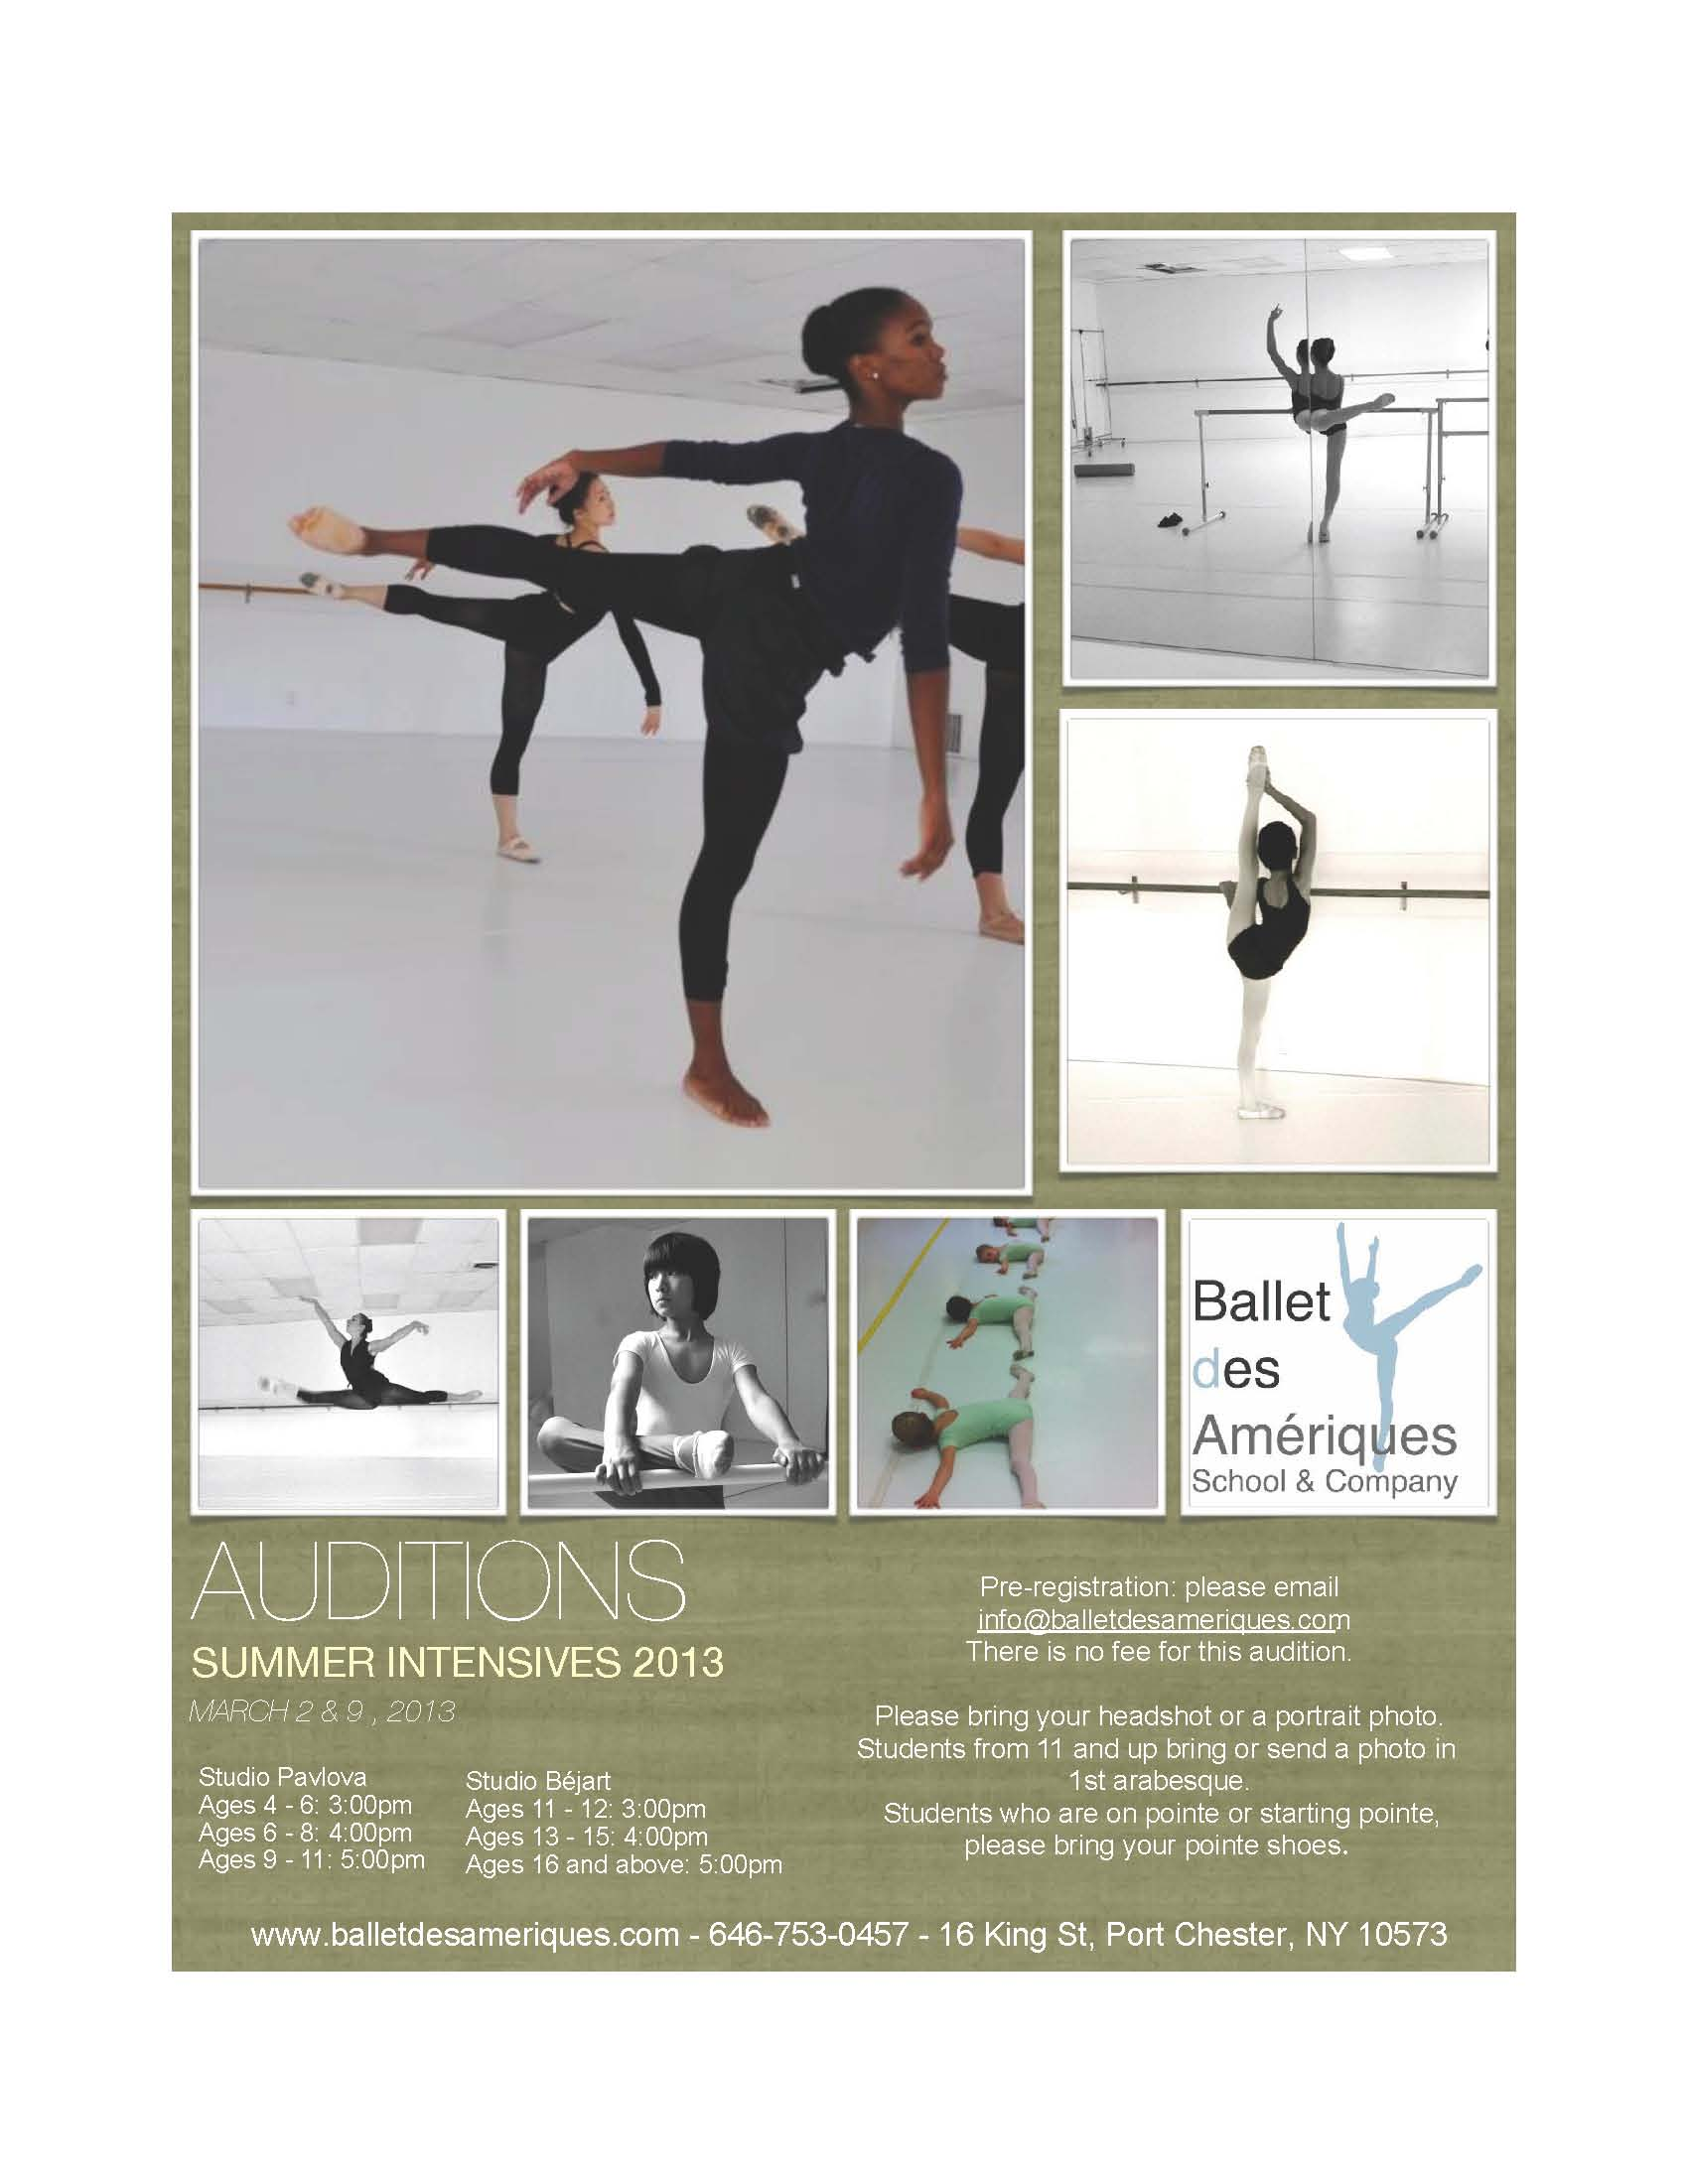 Ballet des Amériques - Summer Intensives 2013 Auditions